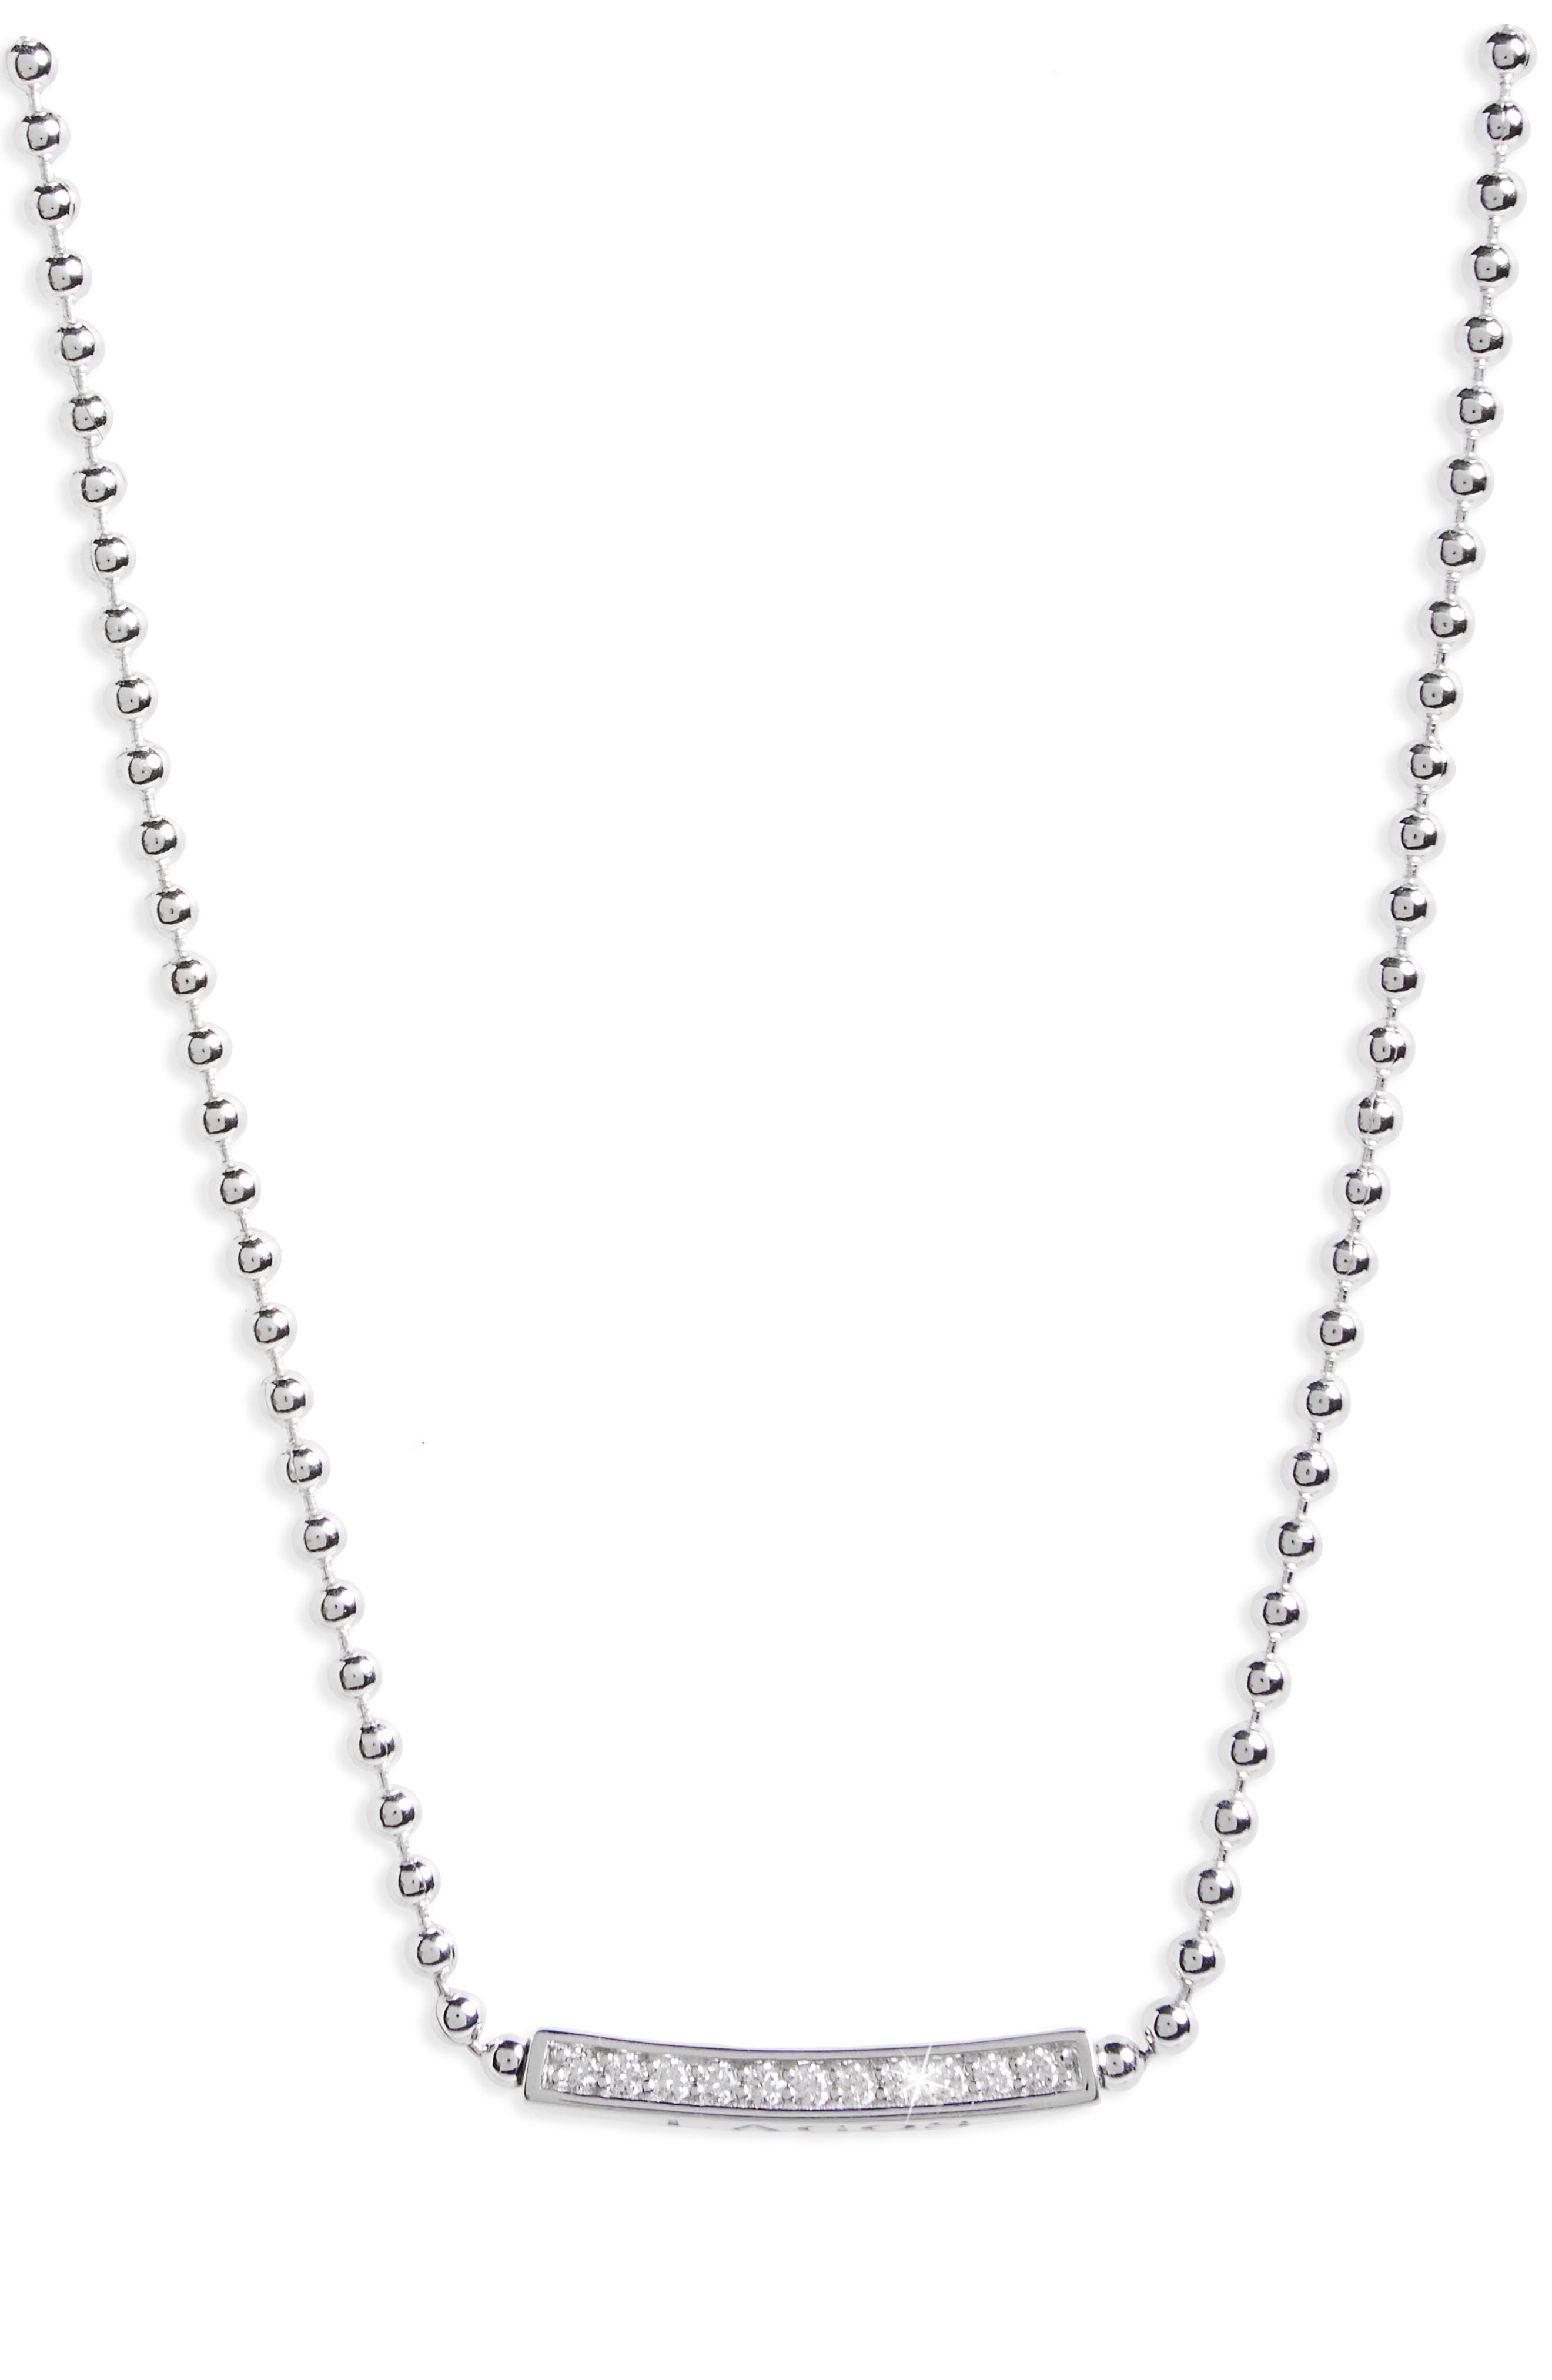 Caviar Spark Diamond Pendant Necklace,                         Main,                         color, Silver/ Diamond